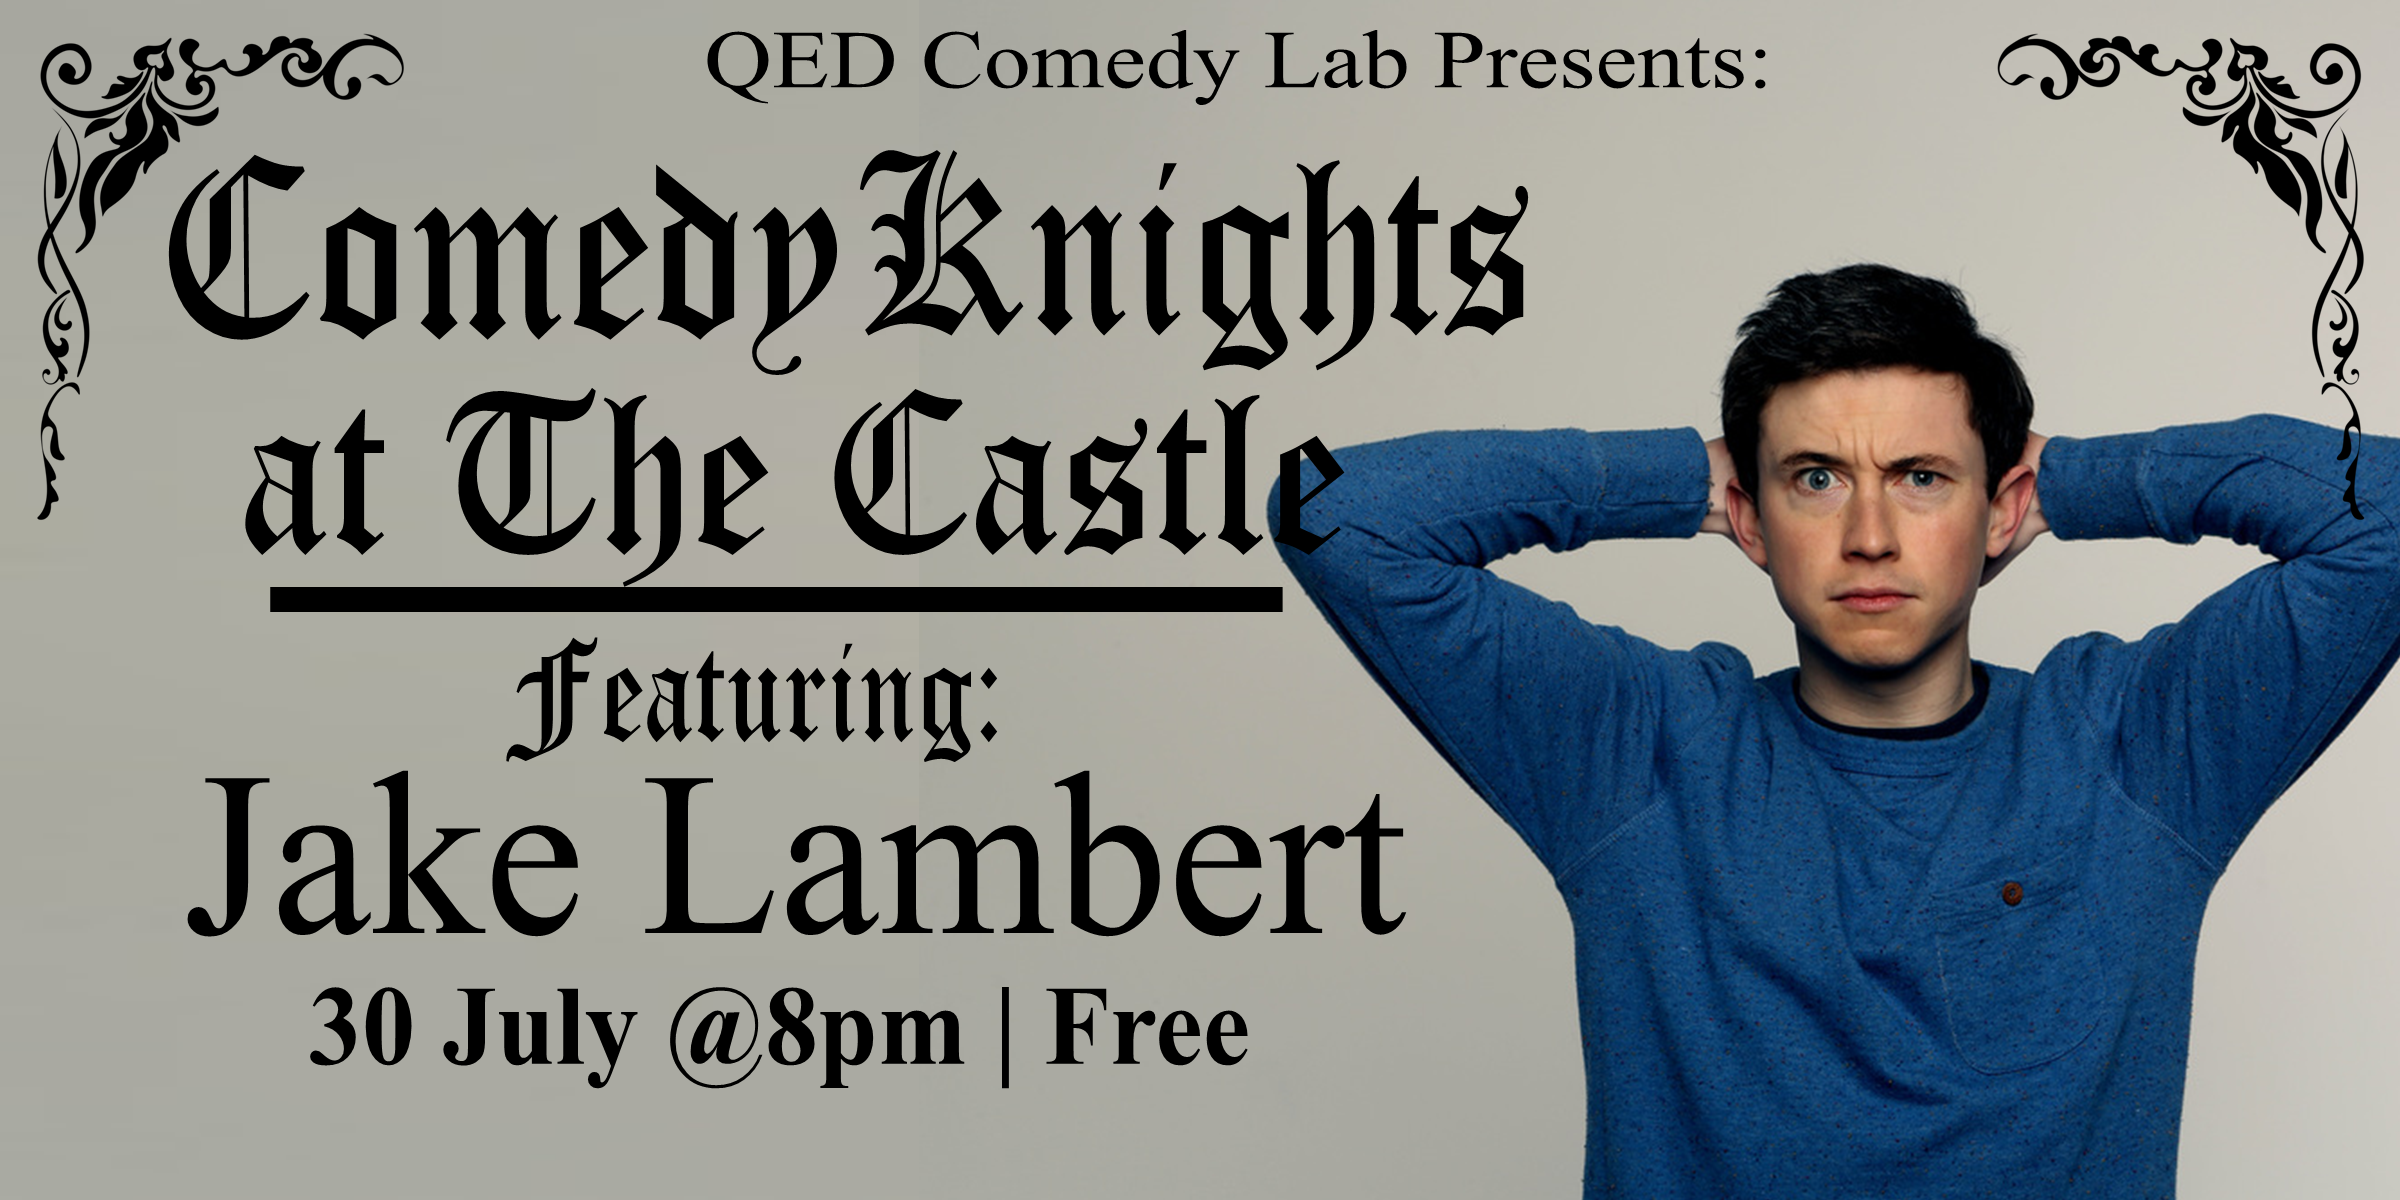 On a quest for the funniest evening in Oxford? Here it is! Join us at the newly renovated Castle Tavern for Comedy Knights, a monthly stand-up showcase that features some of the finest local and national comedians around - but instead of the high comedy club price tag, it's absolutely free.  This month we have a special guest headliner:  Jake Lambert   Also featuring  Kirsten Brown ,  Philip Cooper , and  Rosie McMahon  Hosted by  Matthew Chadourne .  Doors at 7:30/Show at 8:00pm Free!